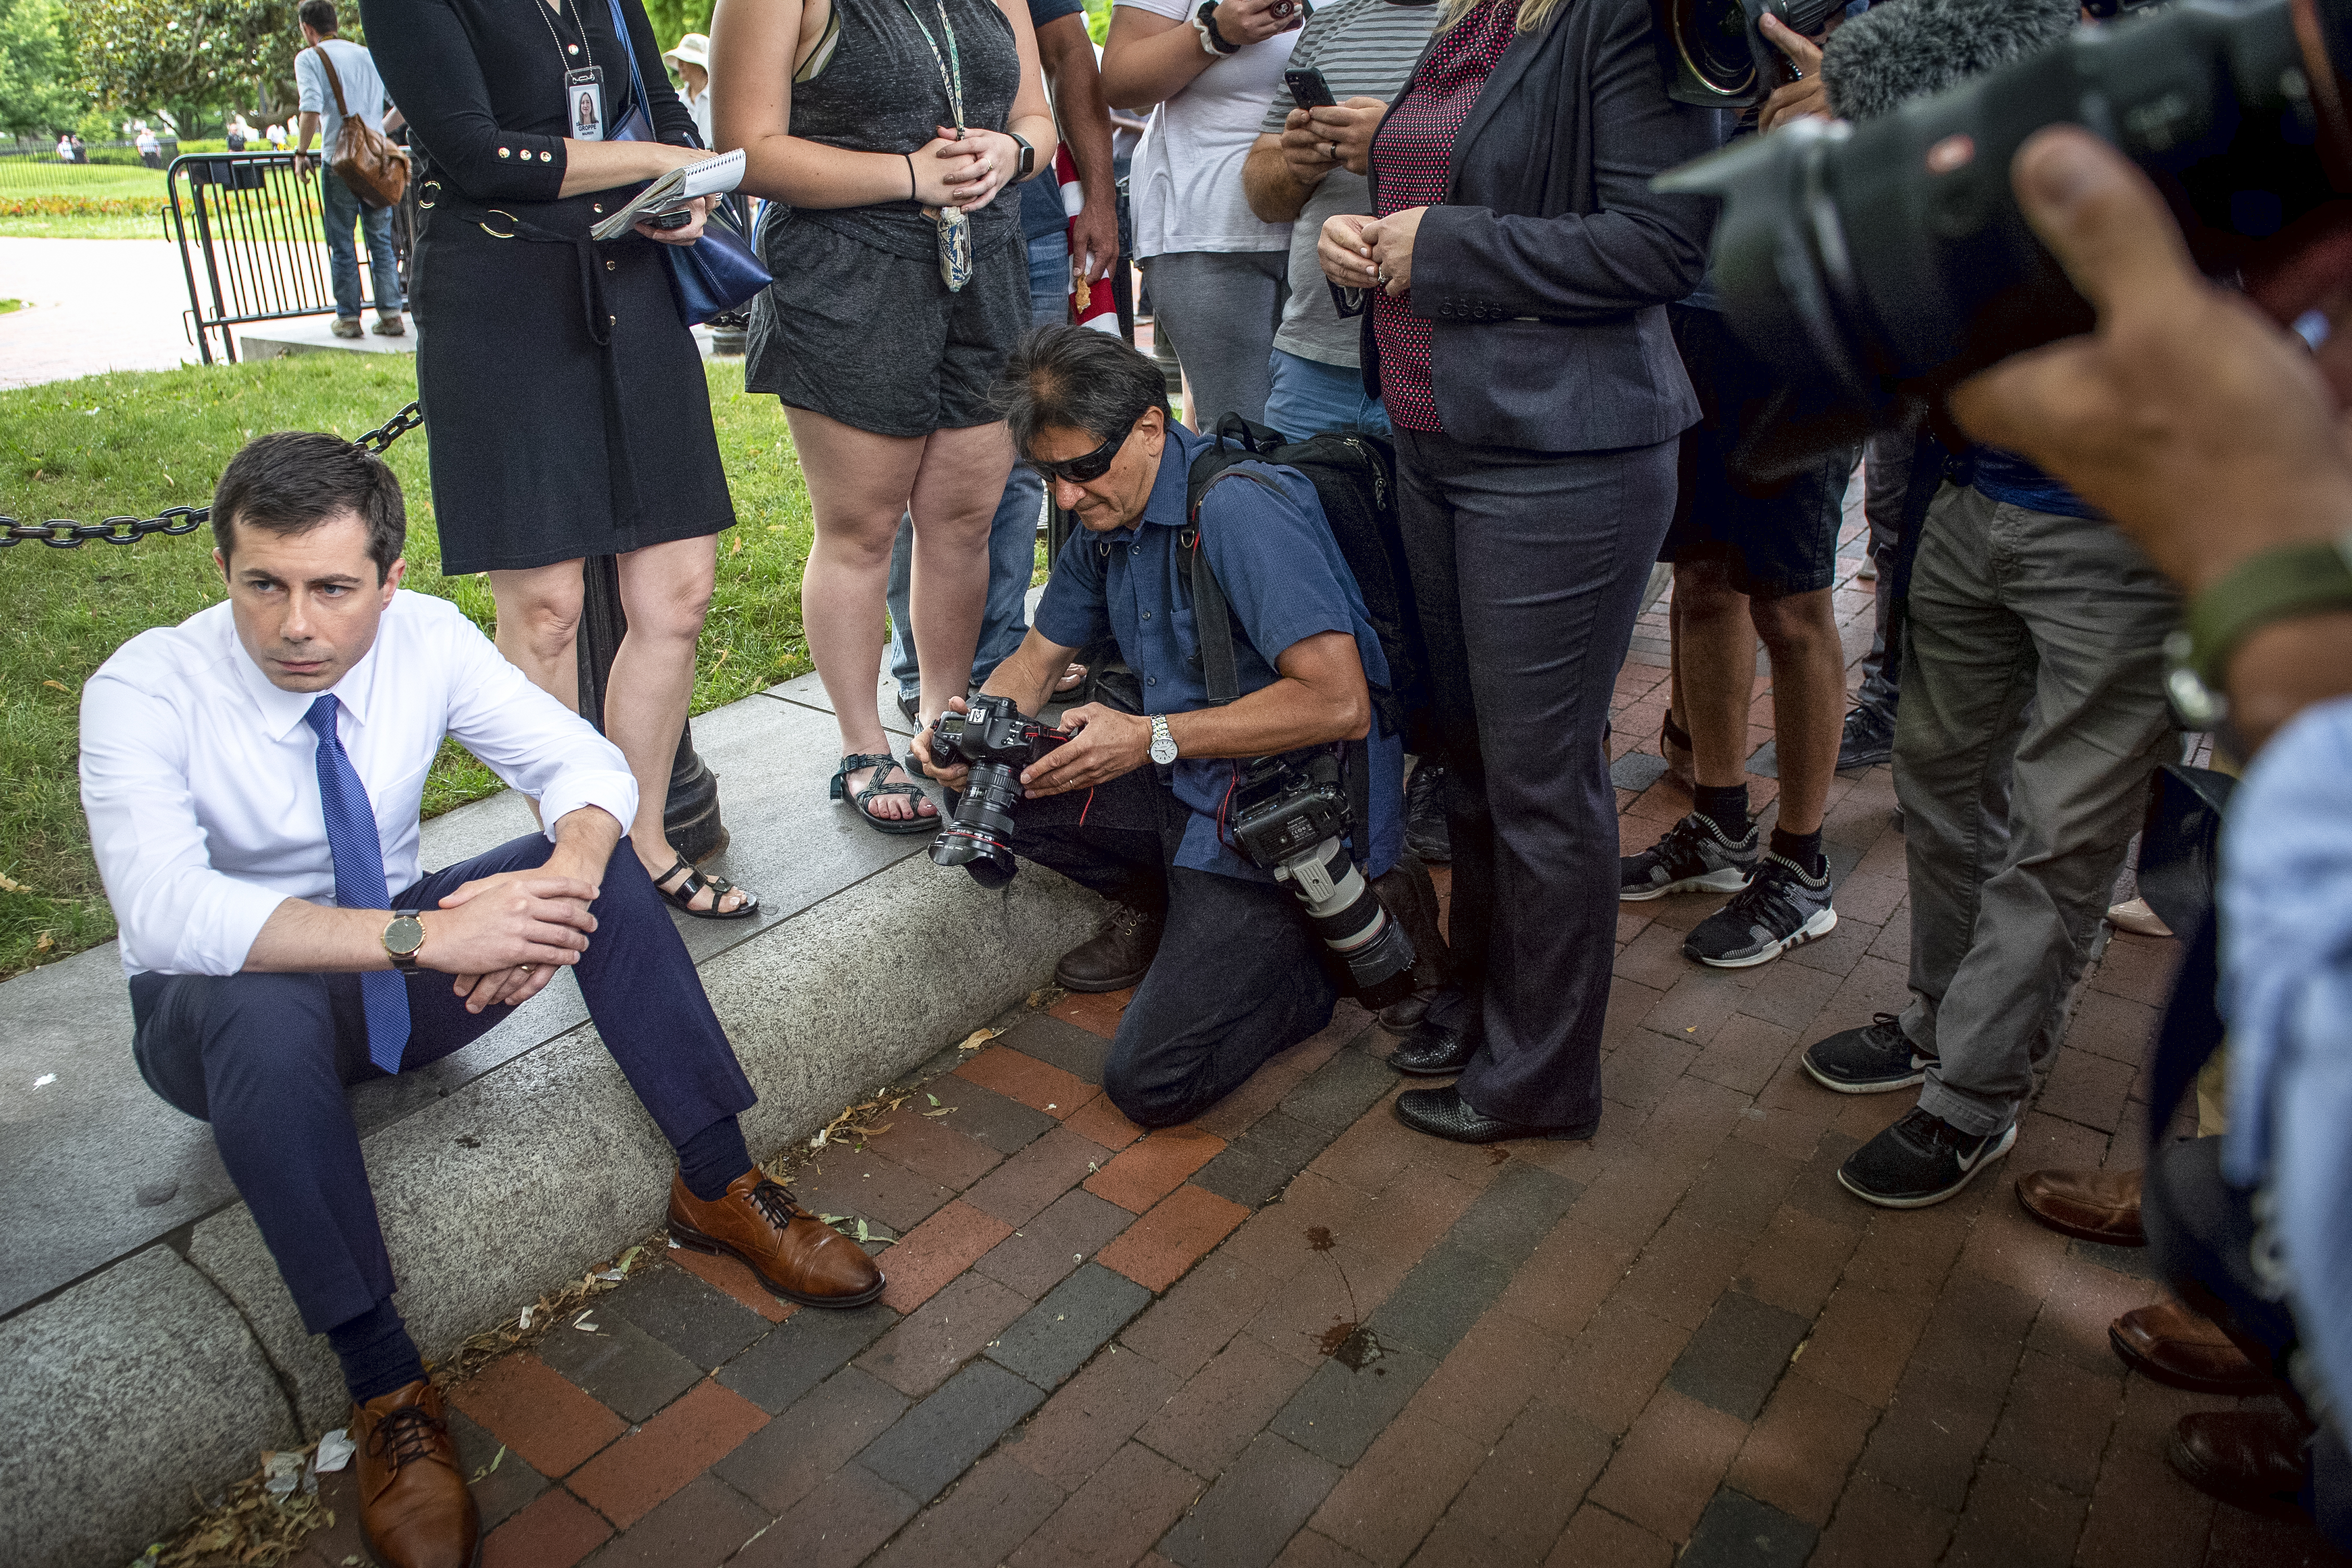 UNITED STATES - JUNE 12: Democratic presidential candidate Mayor Pete Buttigieg sits down to wait before he attends a rally protesting against President Donald Trump policies outside of the White House in Washington on Wednesday June 12, 2019. (Photo by Caroline Brehman/CQ Roll Call)